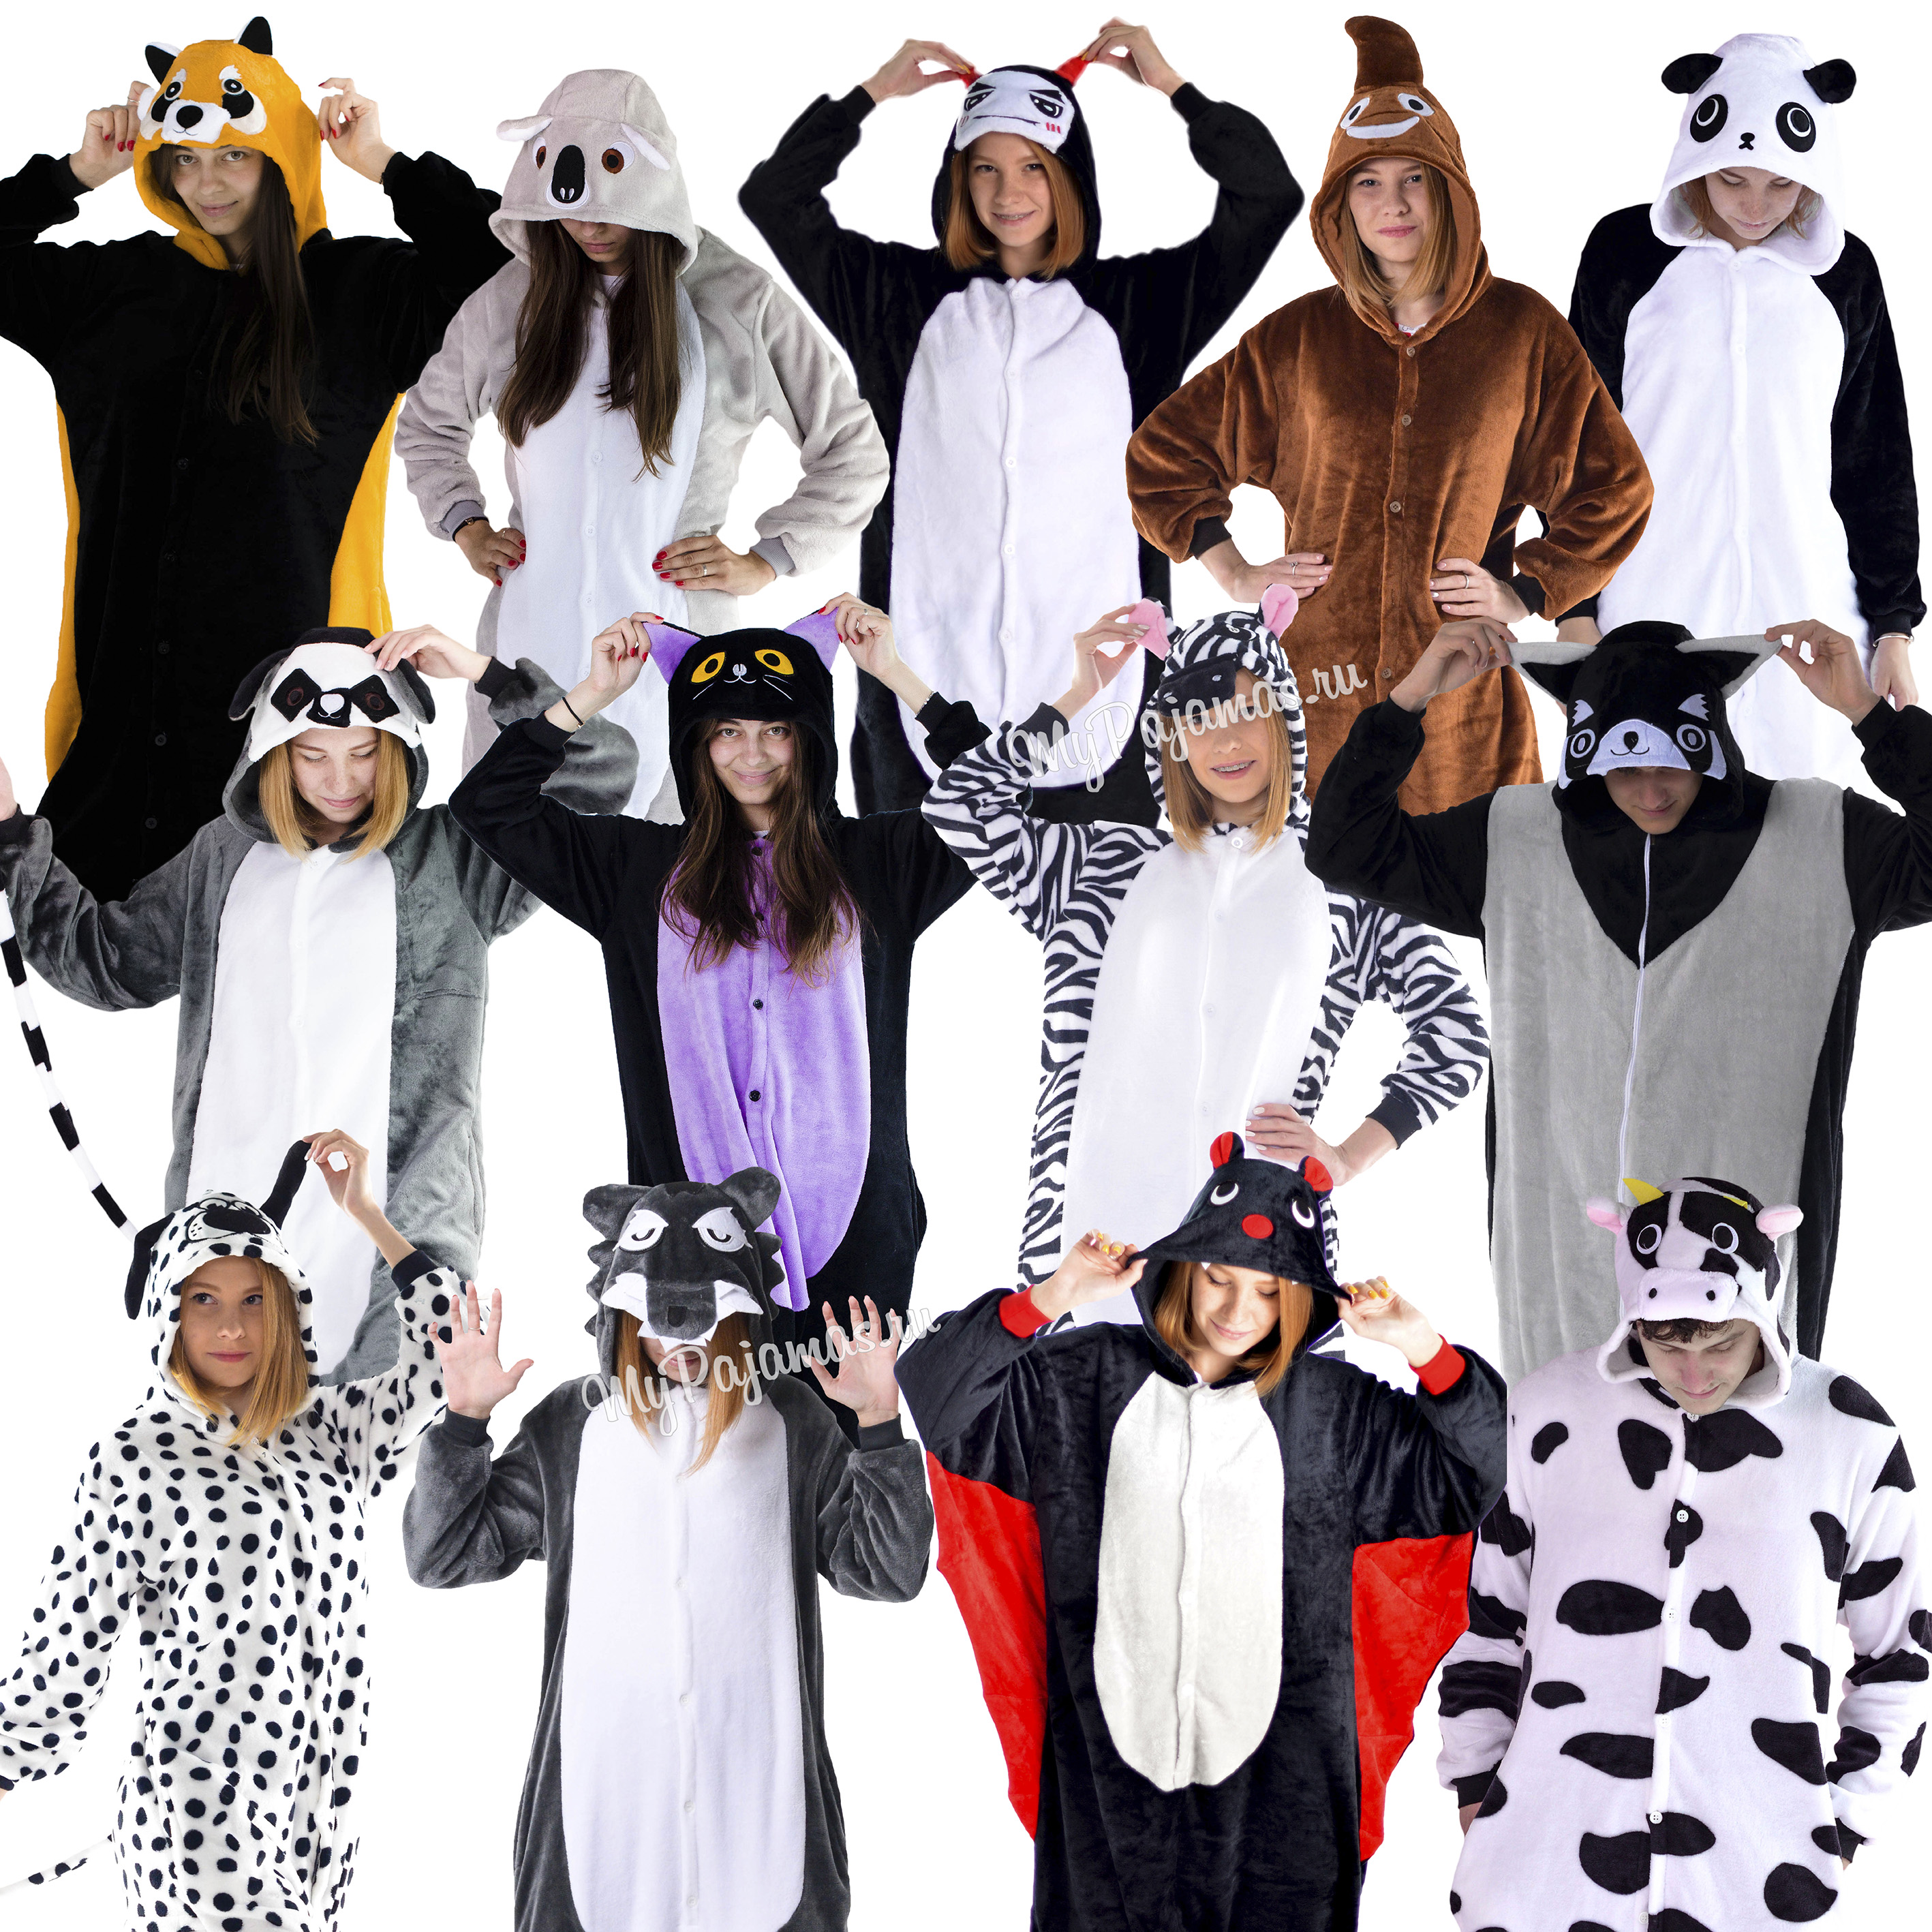 Pajamas Kigurumi Penguin, Bat, Koala, Raccoon, Lemur, Piece Of Shit, Wolf, Cow, Sleepwear Women And Men.